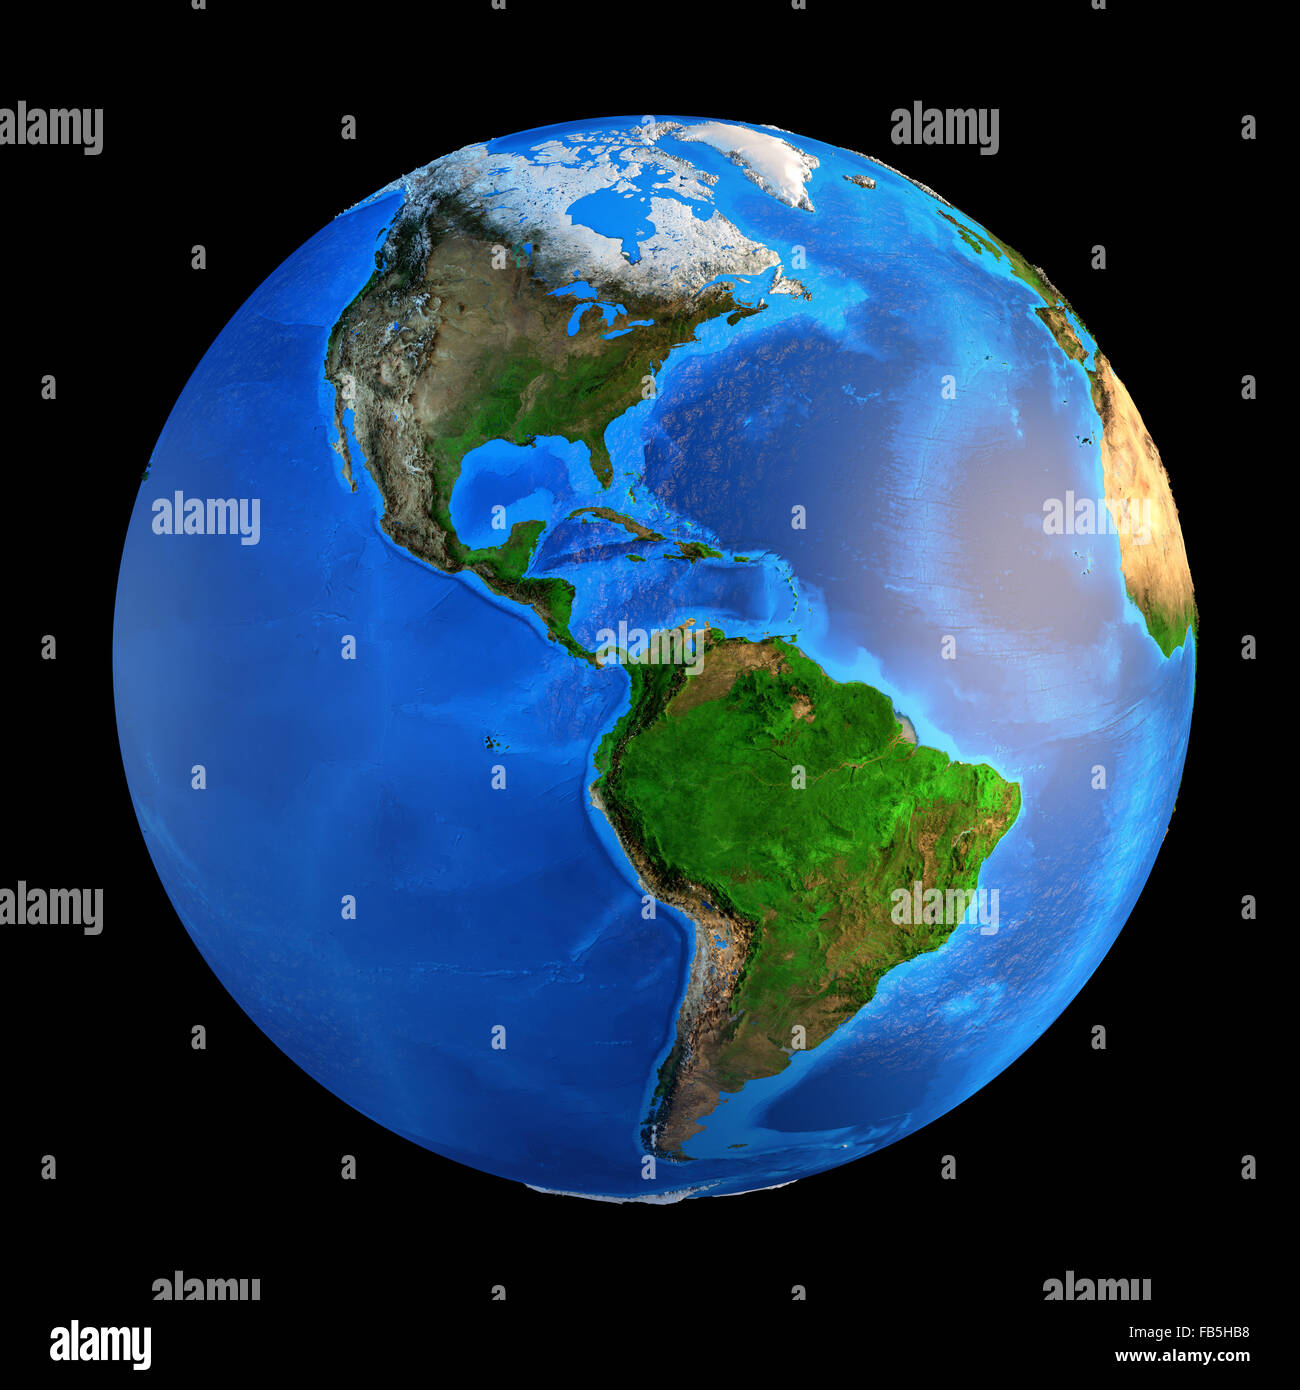 Detailed picture of the Earth and its landforms, isolated on black. Elements of this image furnished by NASA - Stock Image